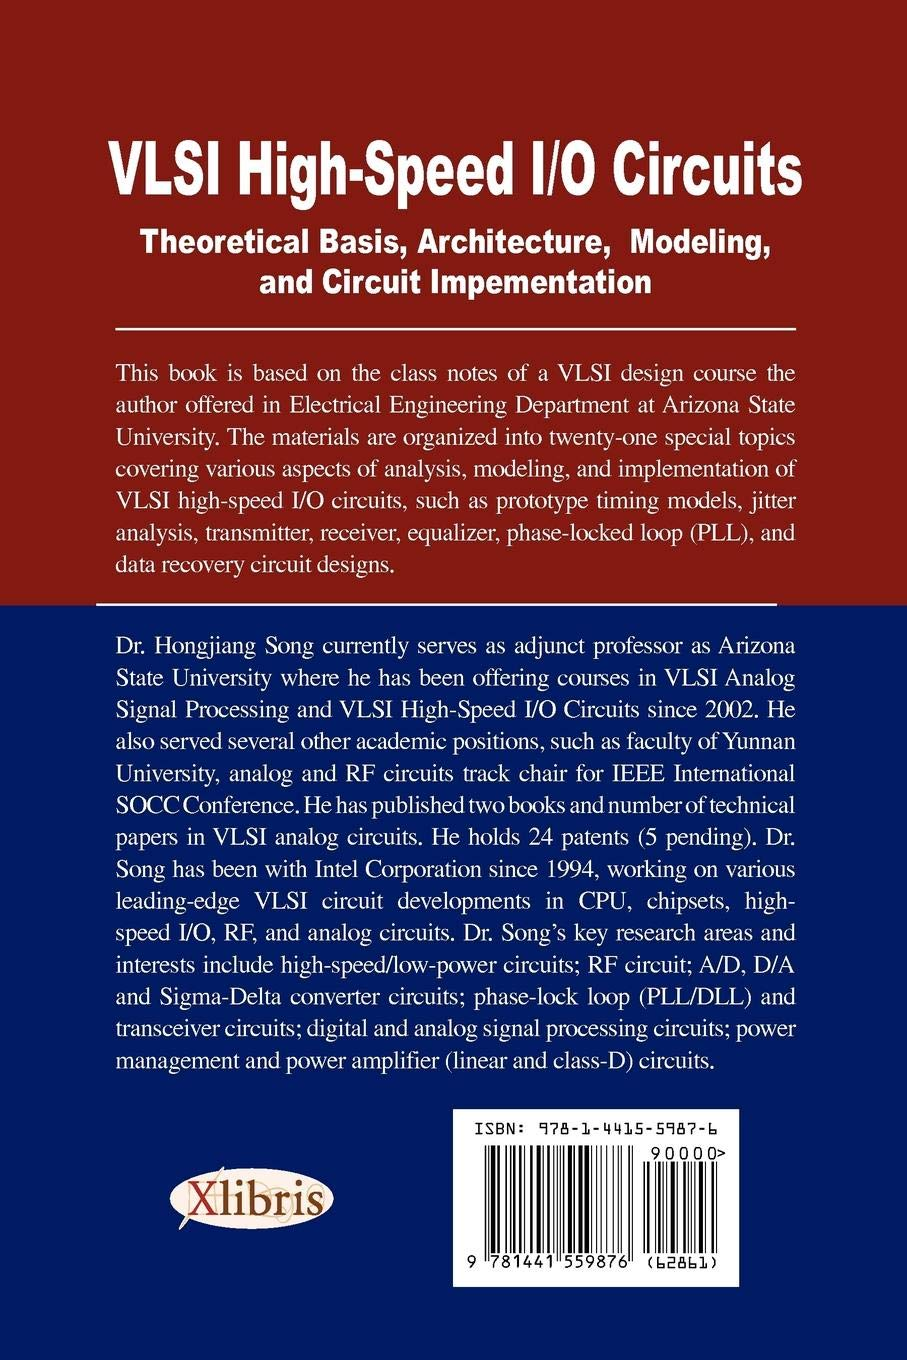 Buy VLSI High-Speed I/O Circuits Book Online at Low Prices